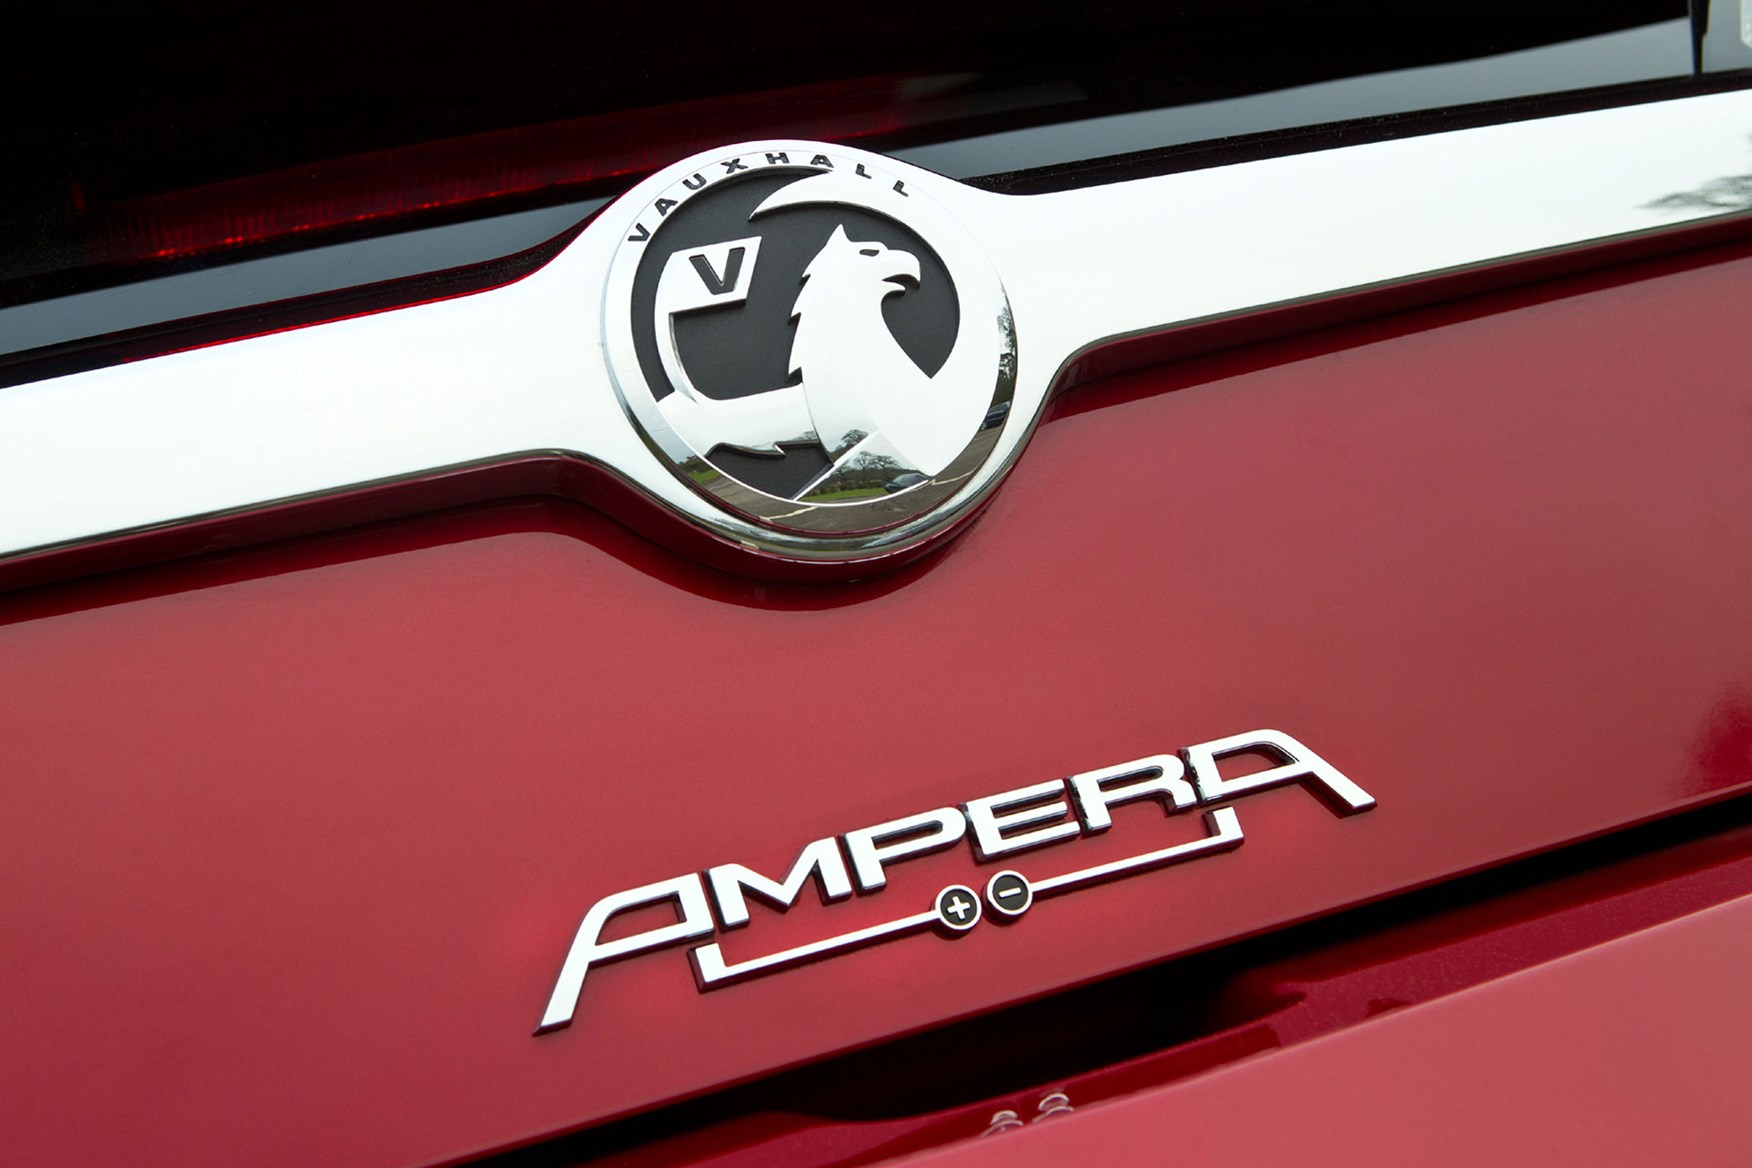 Vauxhall Ampera rear logo + - symbol, clever design on a clever car